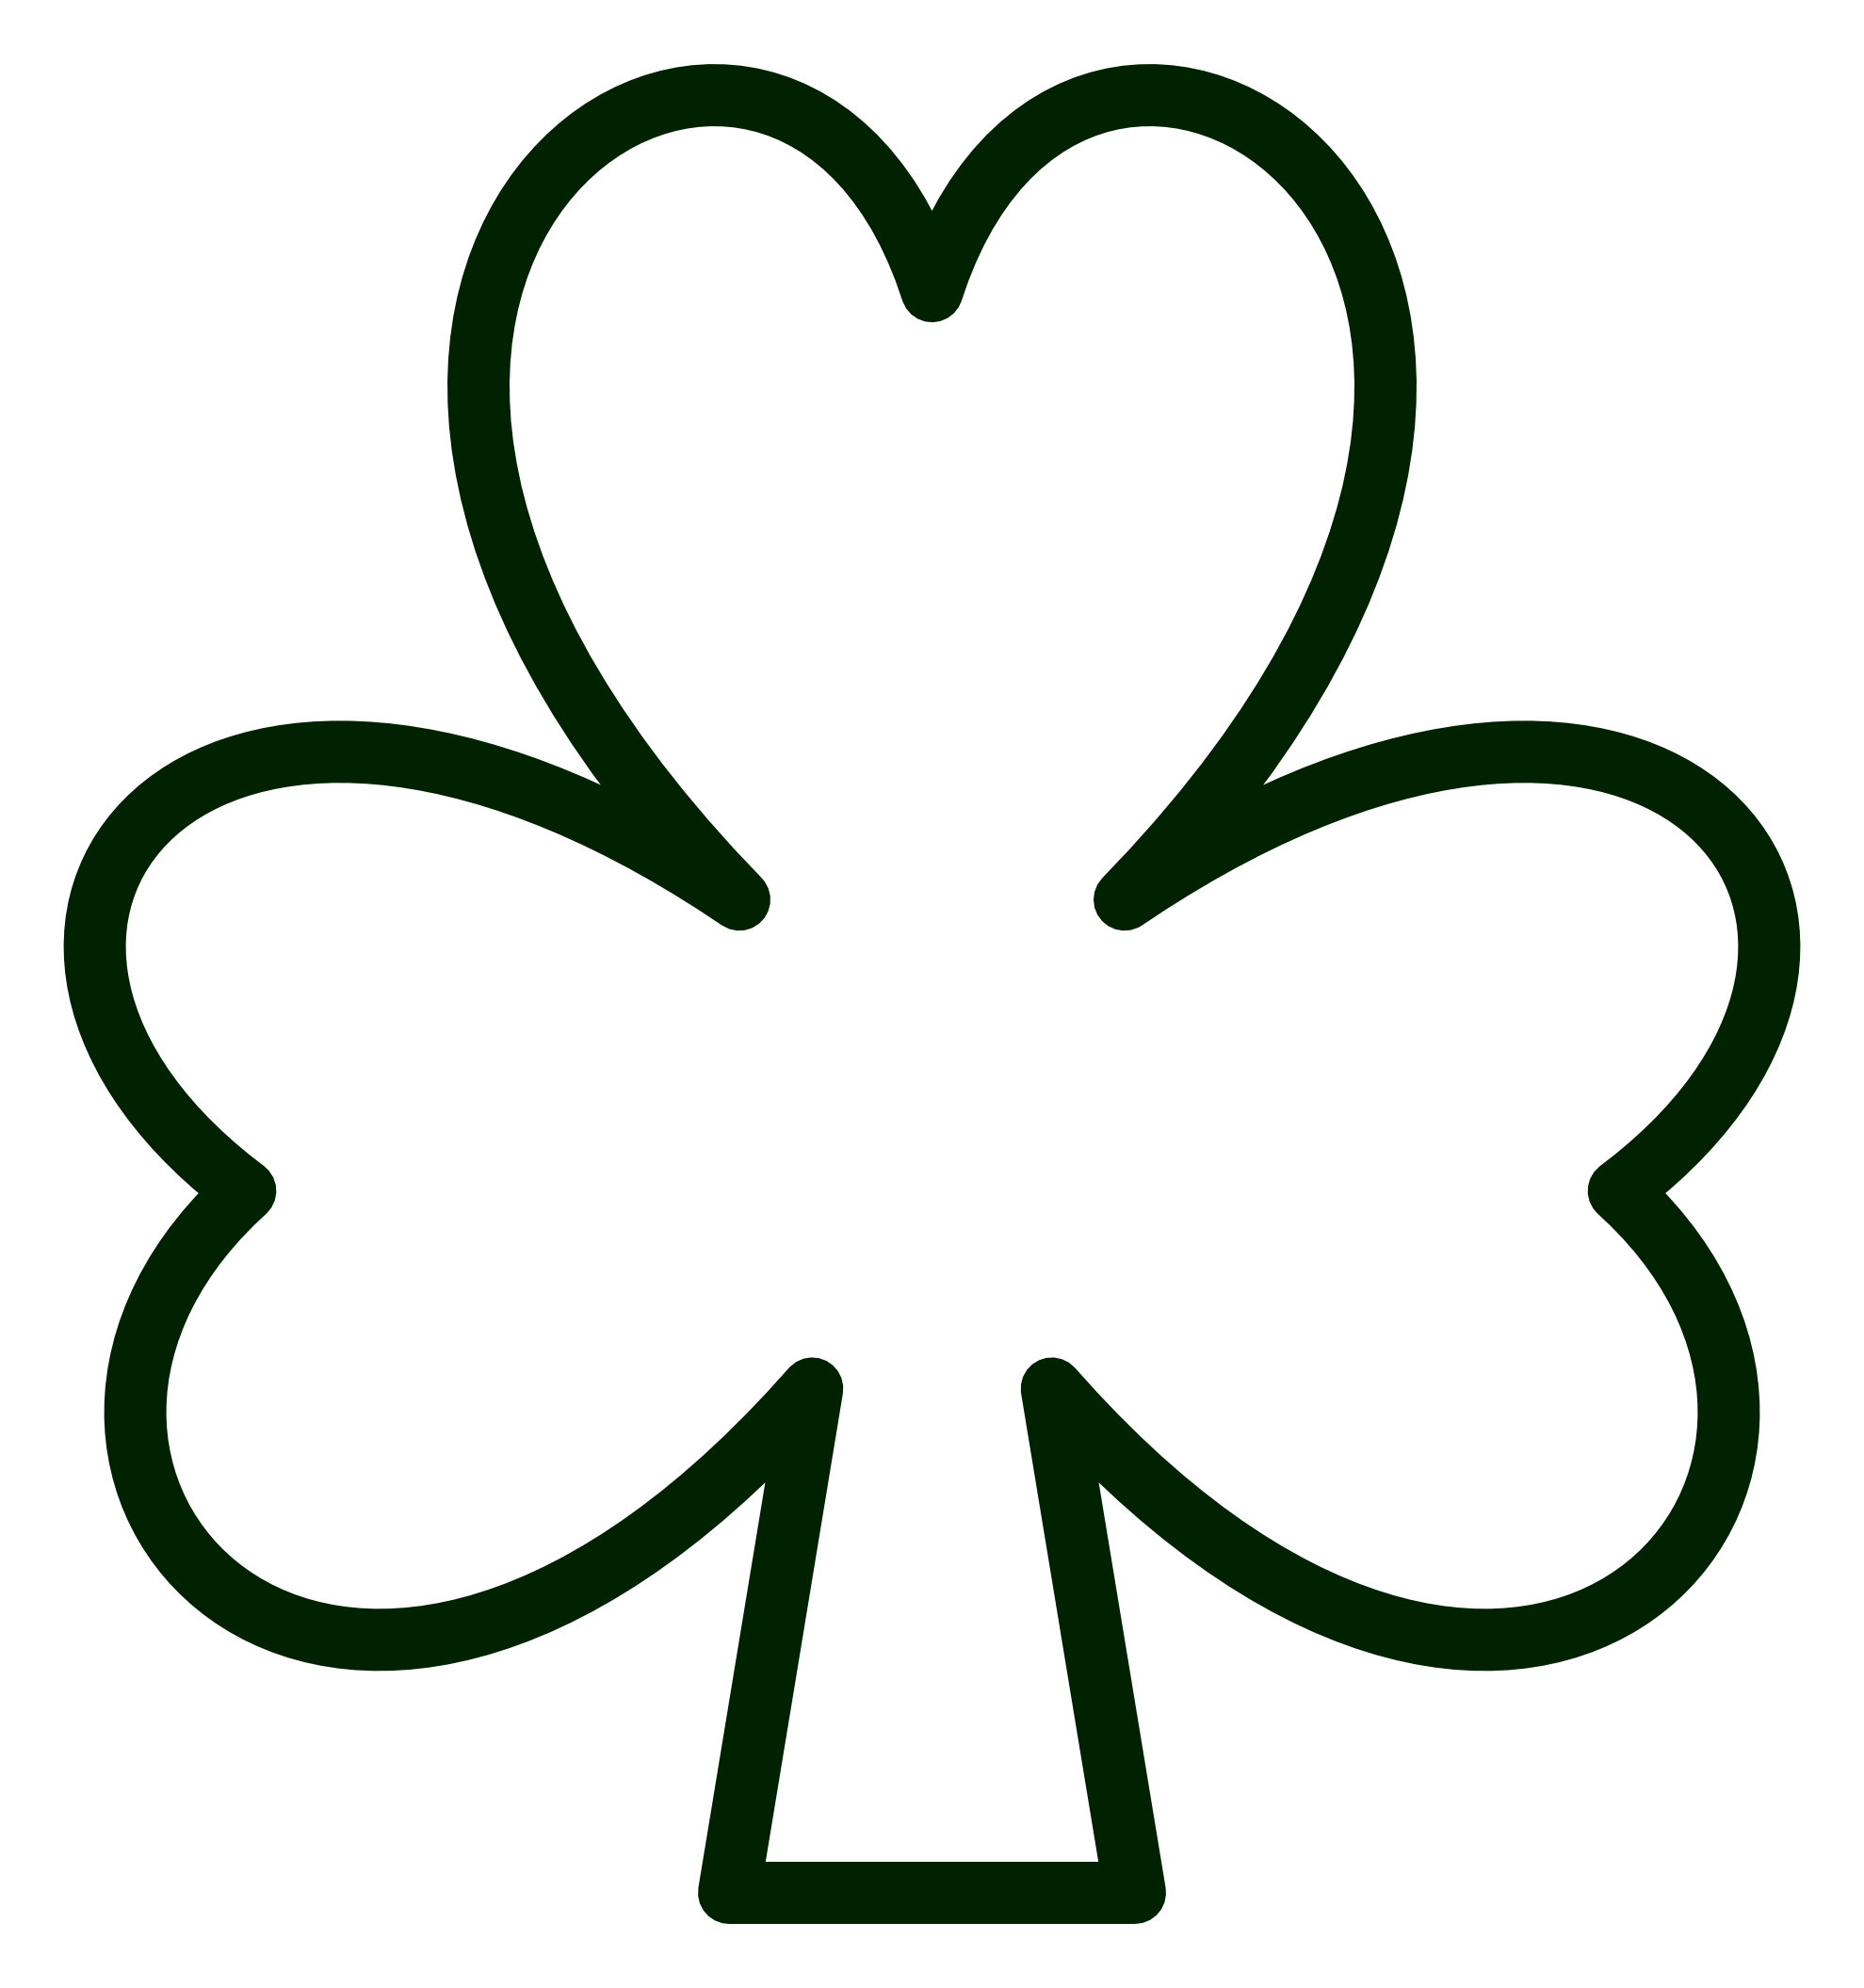 Shamrock cliparts png transparent library Clip art shamrock clipart - Cliparting.com png transparent library